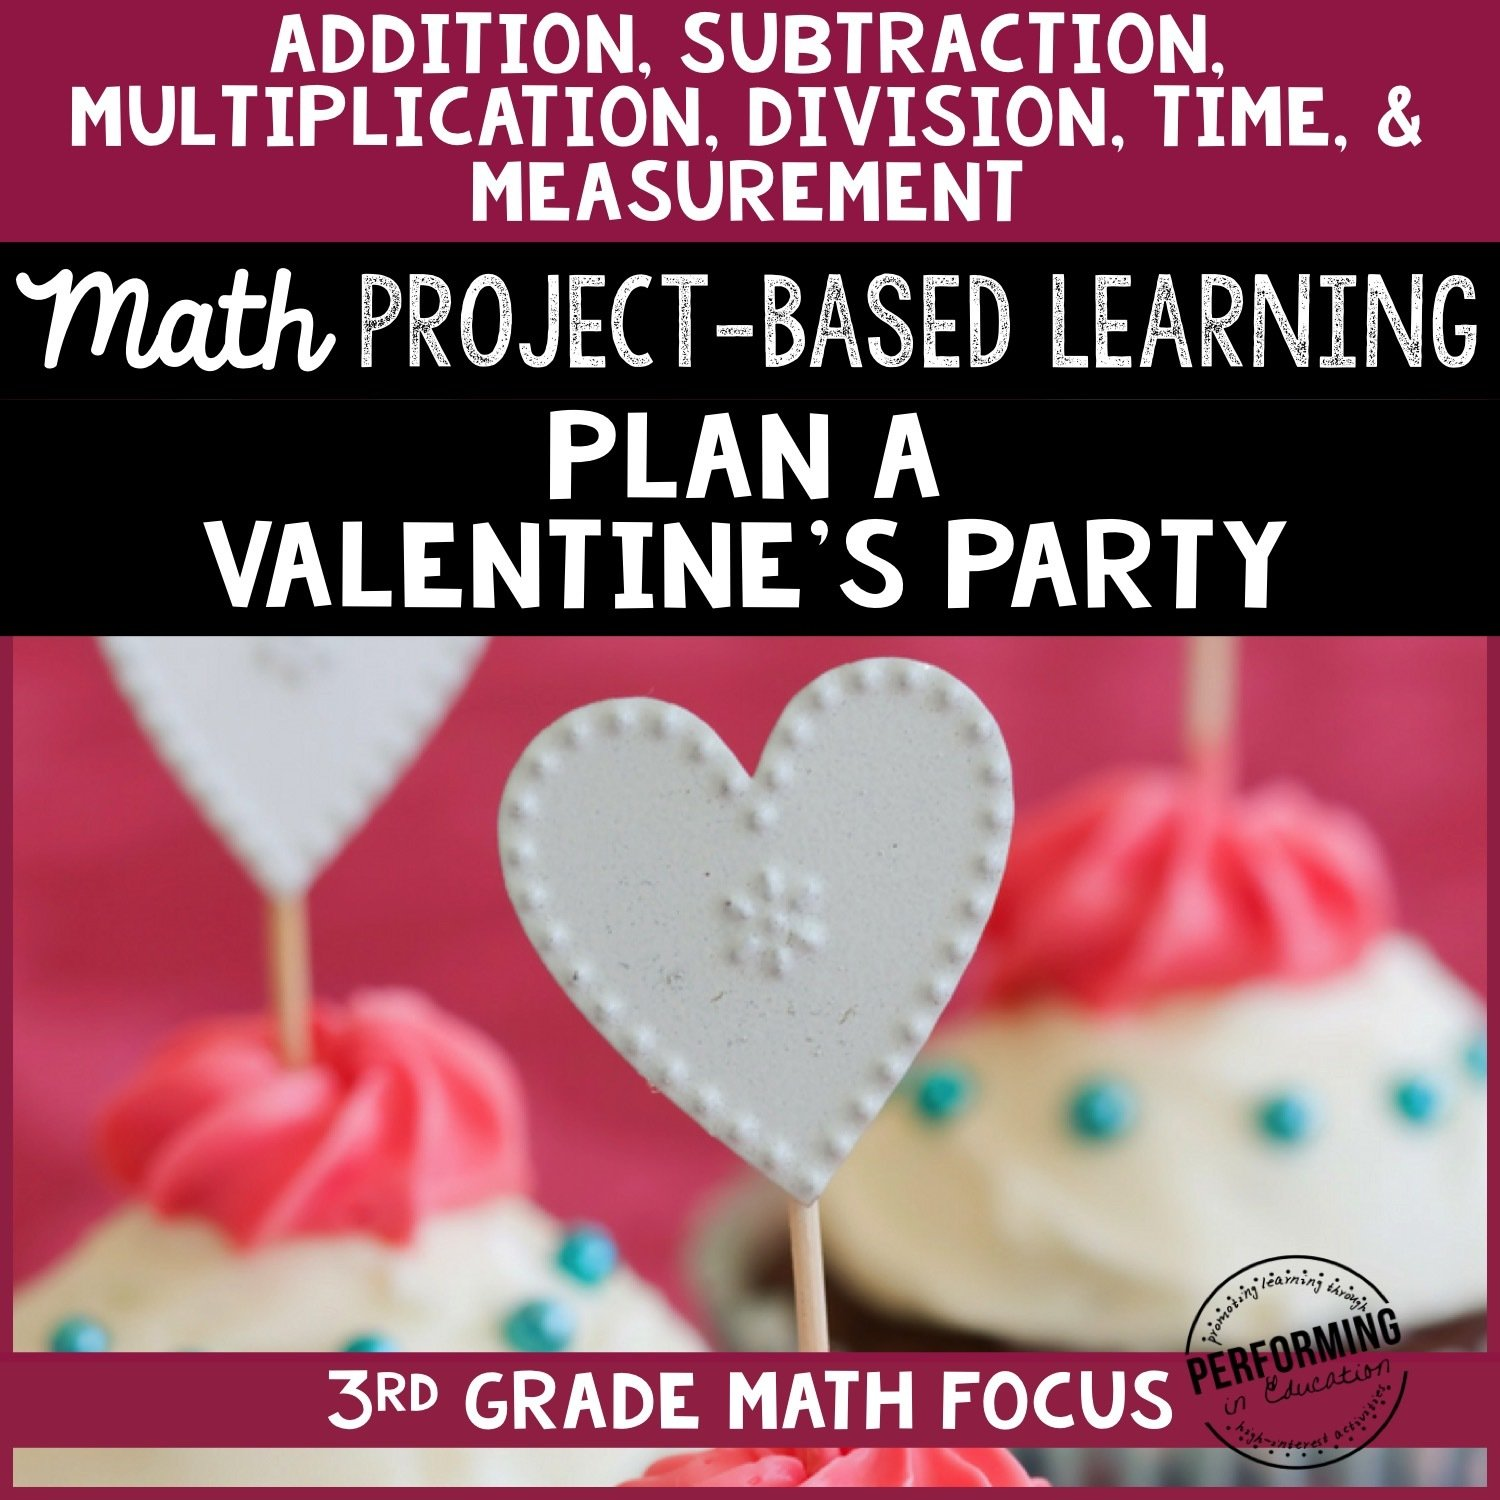 Valentine's Day Math Project-based Learning: 3rd Grade Edition 00057